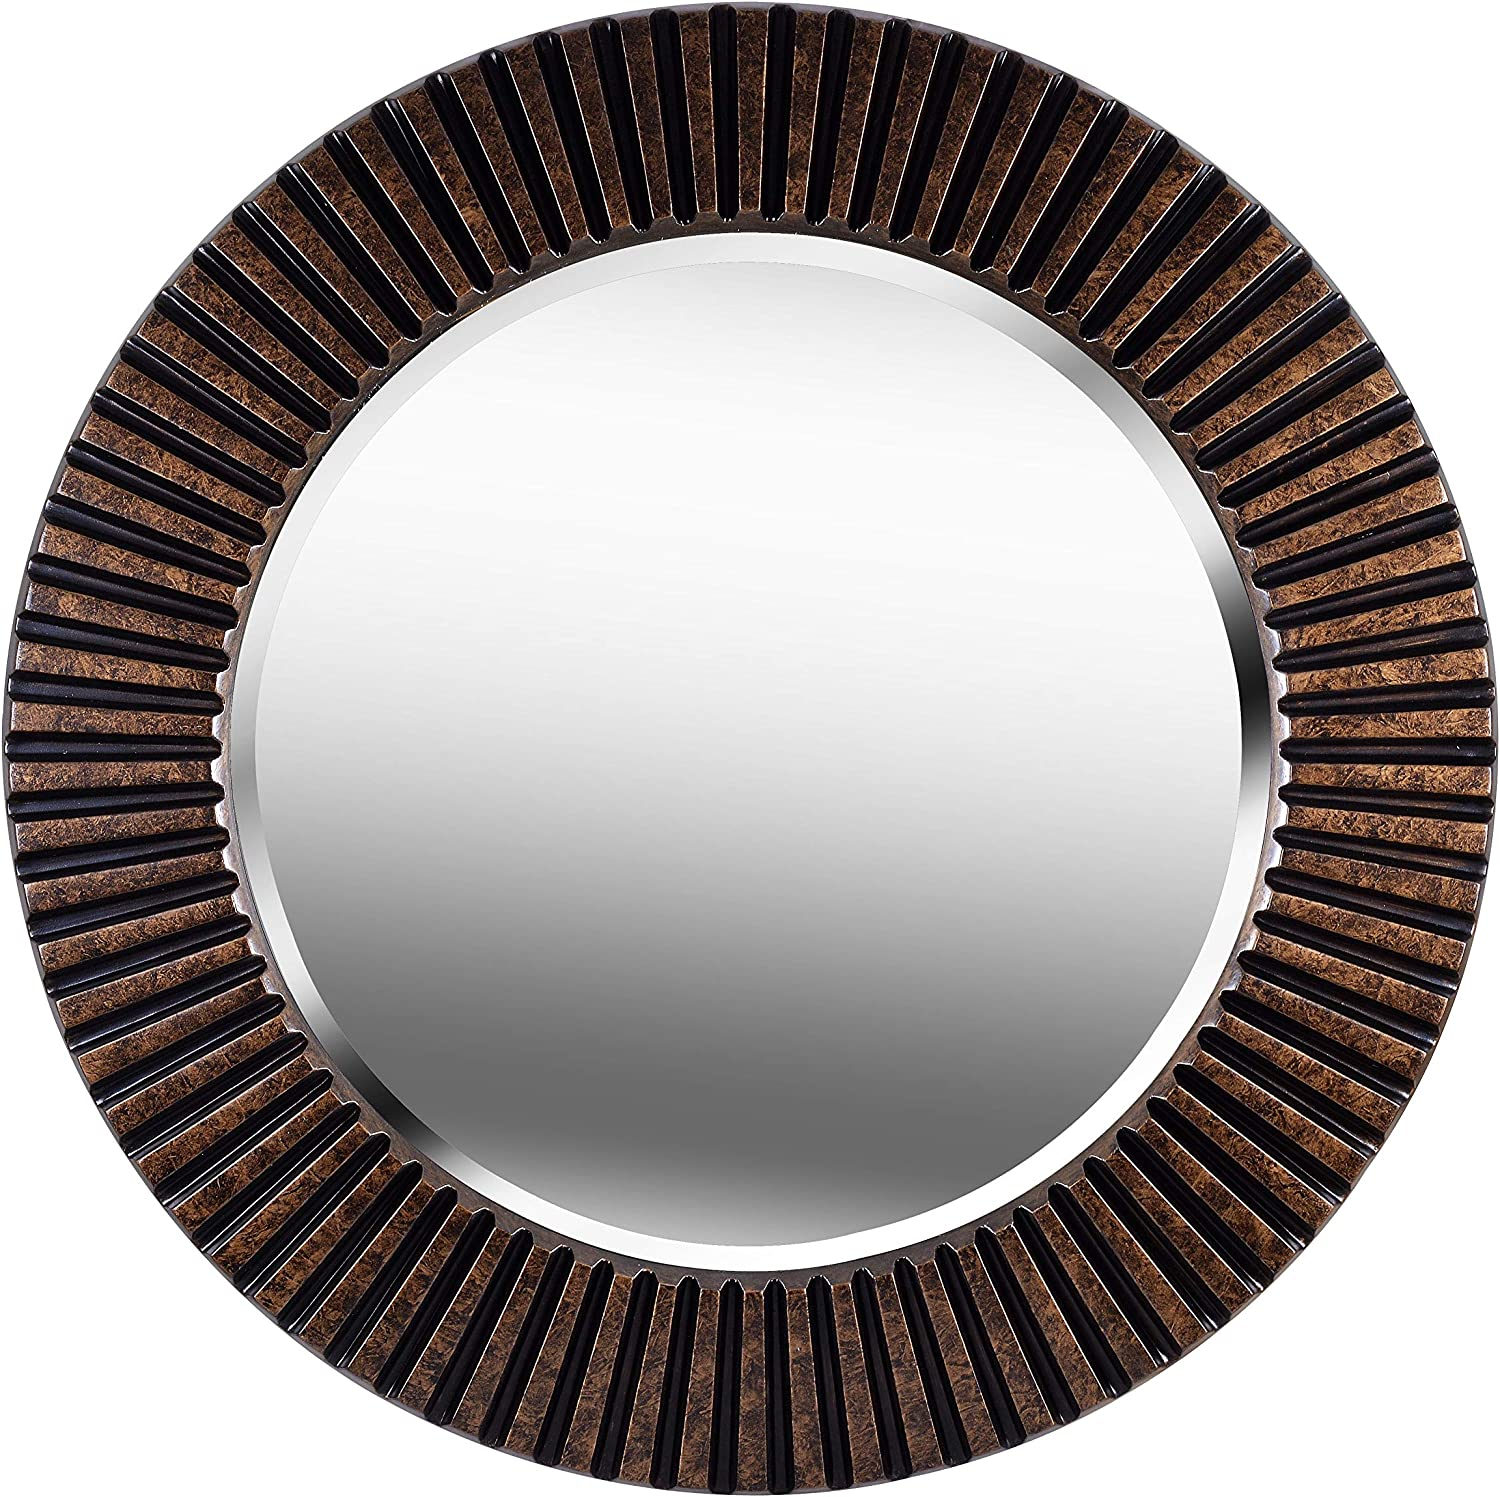 Kenroy Home Kenroy 60021 Transitional Wall Mirror from North Beach Collection in Bronze/Dark Finish, 34 Inch Diameter